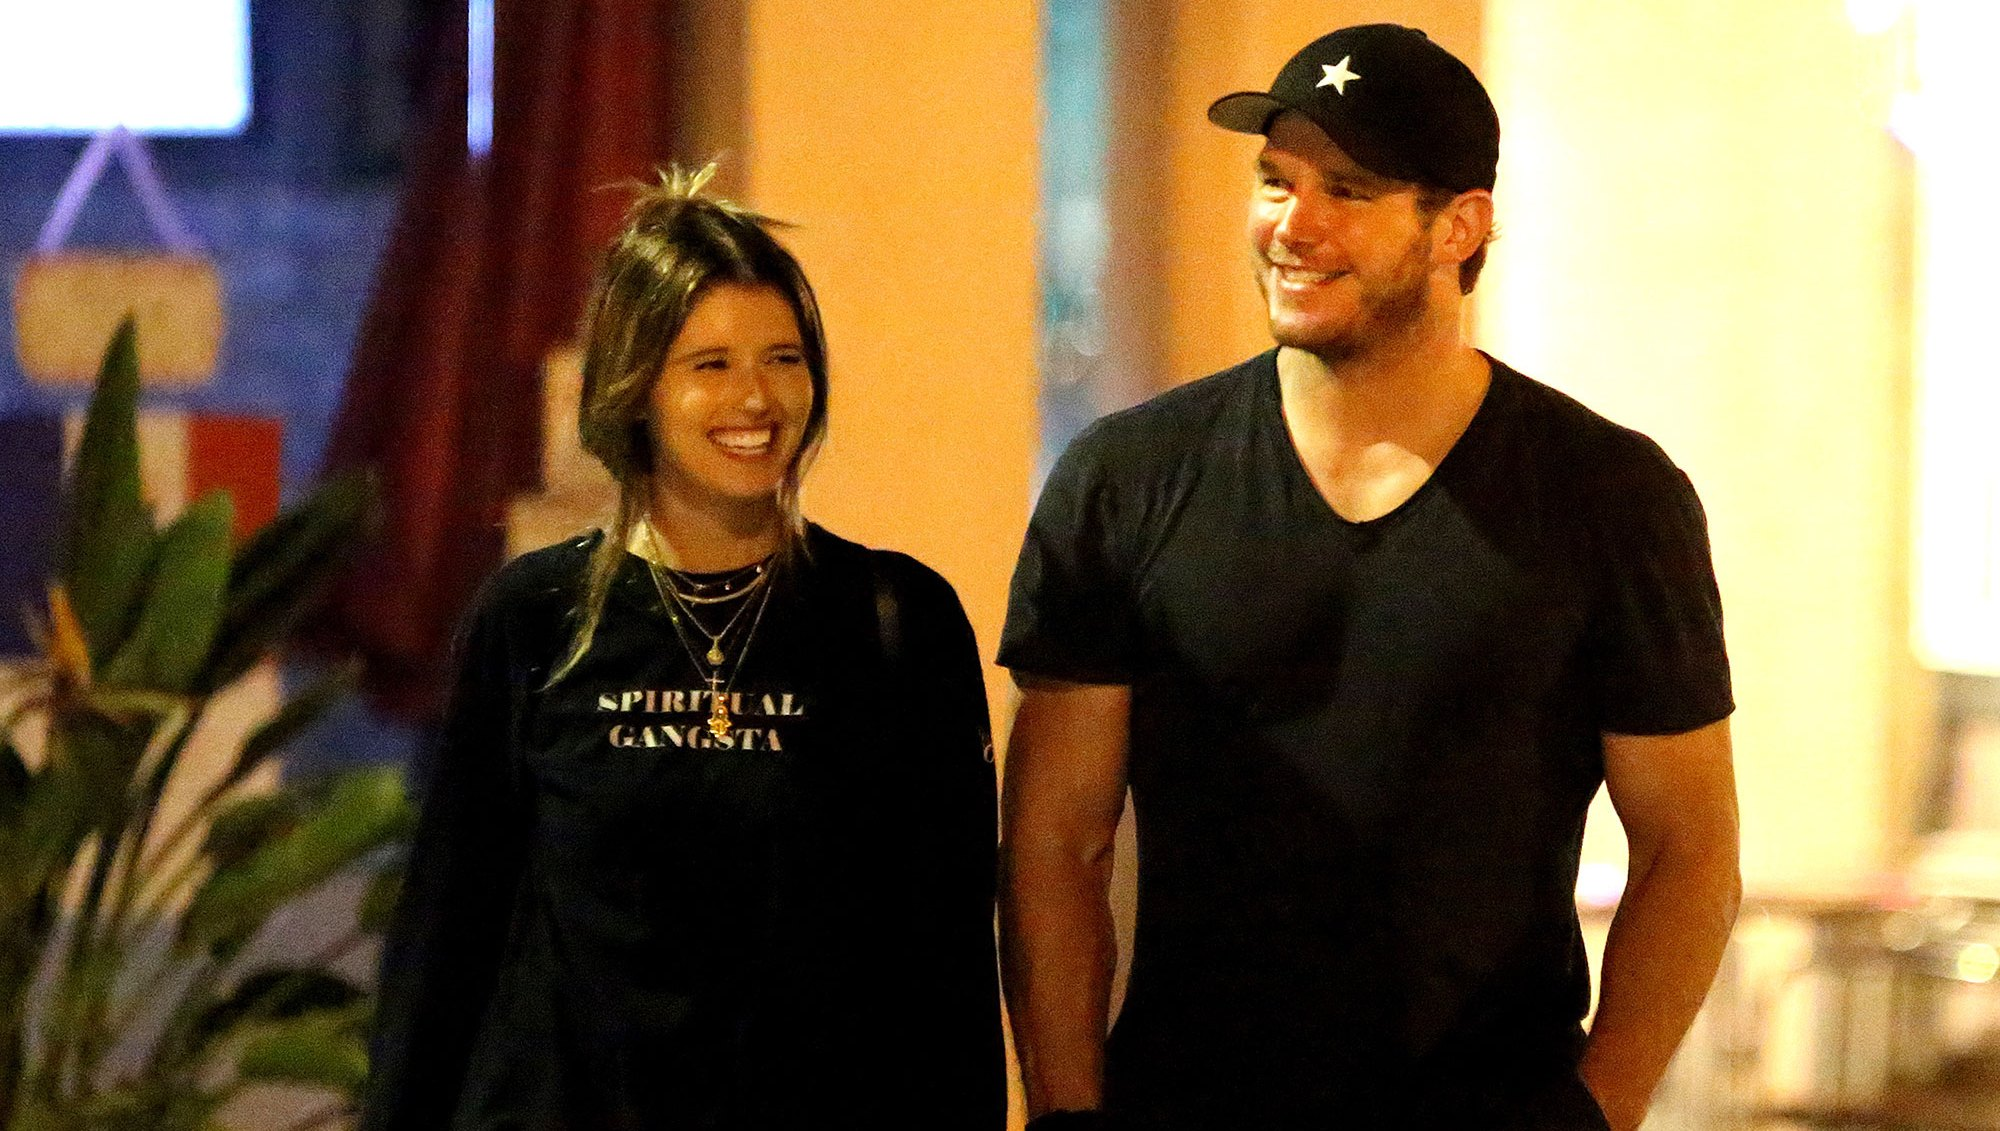 Chris-Pratt-Helps- Katherine- Schwarzenegger- Move-Out-of-Her Home